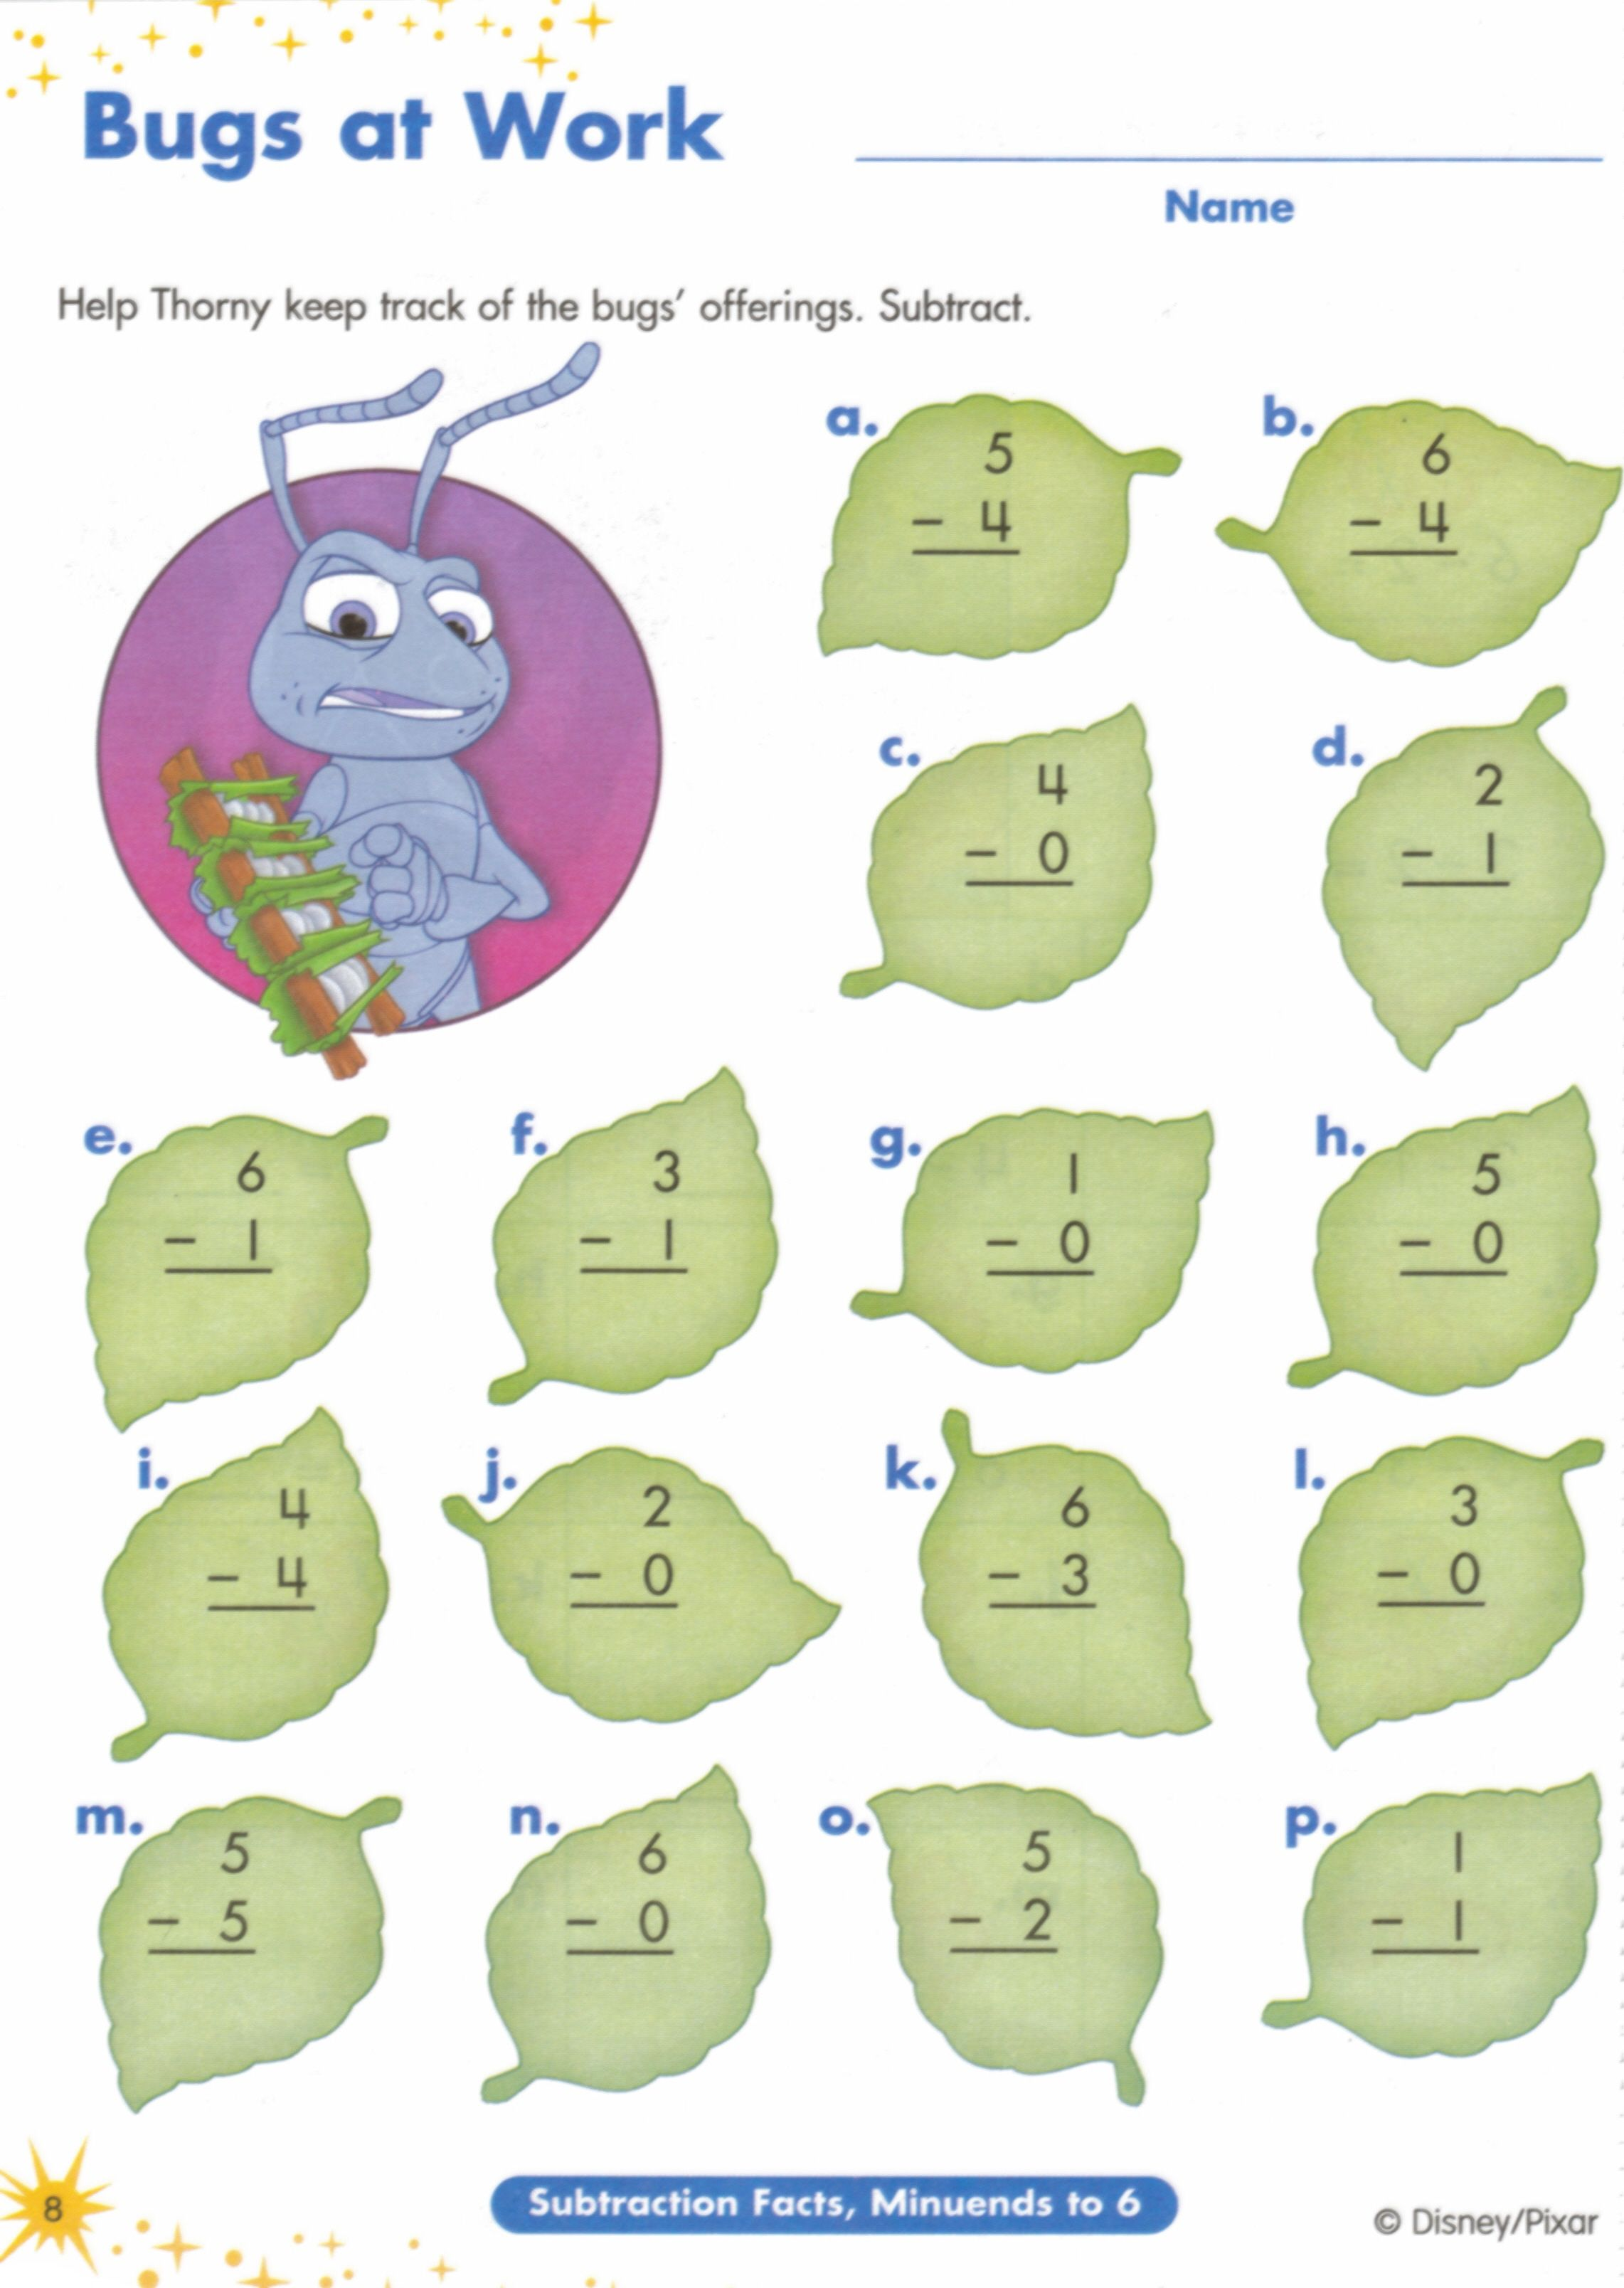 Weirdmailus  Marvellous  Images About Worksheets On Pinterest  Fun Facts For Kids  With Glamorous  Images About Worksheets On Pinterest  Fun Facts For Kids Earth Day Worksheets And Jungles With Appealing Daniel Boone Worksheets Also Hebrew Reading Worksheets In Addition Ozone Depletion Worksheet And Math Ratios Worksheets As Well As Free Printable Multiplication And Division Worksheets Additionally What Is Chemistry Worksheet From Pinterestcom With Weirdmailus  Glamorous  Images About Worksheets On Pinterest  Fun Facts For Kids  With Appealing  Images About Worksheets On Pinterest  Fun Facts For Kids Earth Day Worksheets And Jungles And Marvellous Daniel Boone Worksheets Also Hebrew Reading Worksheets In Addition Ozone Depletion Worksheet From Pinterestcom